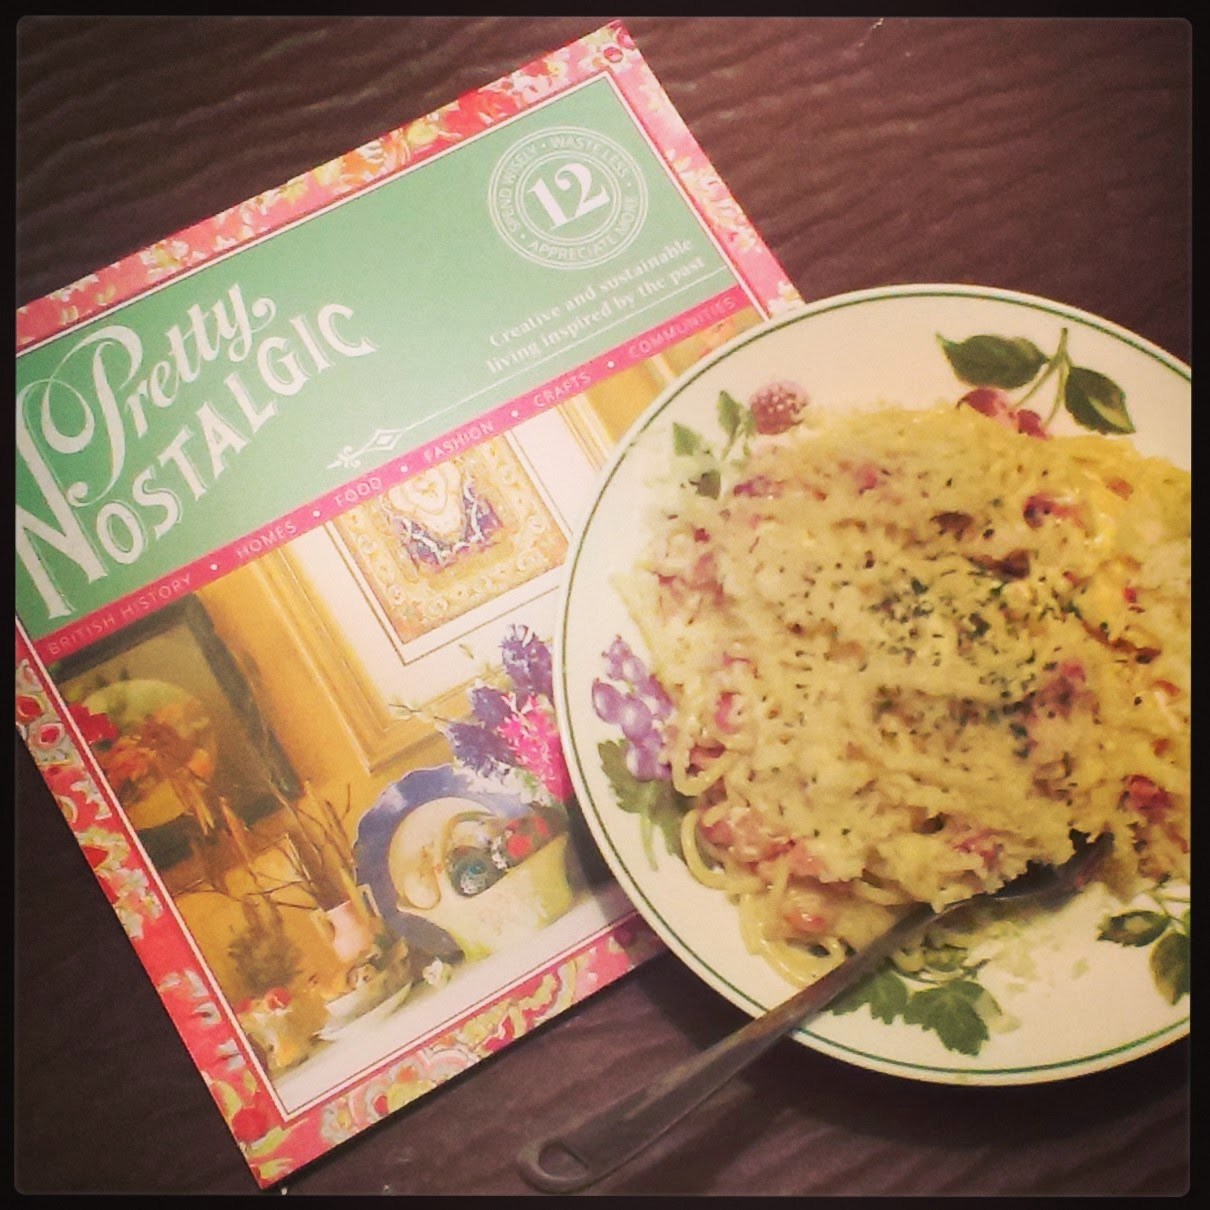 Pretty Nostalgic magazine and Spaghetti Carbonara